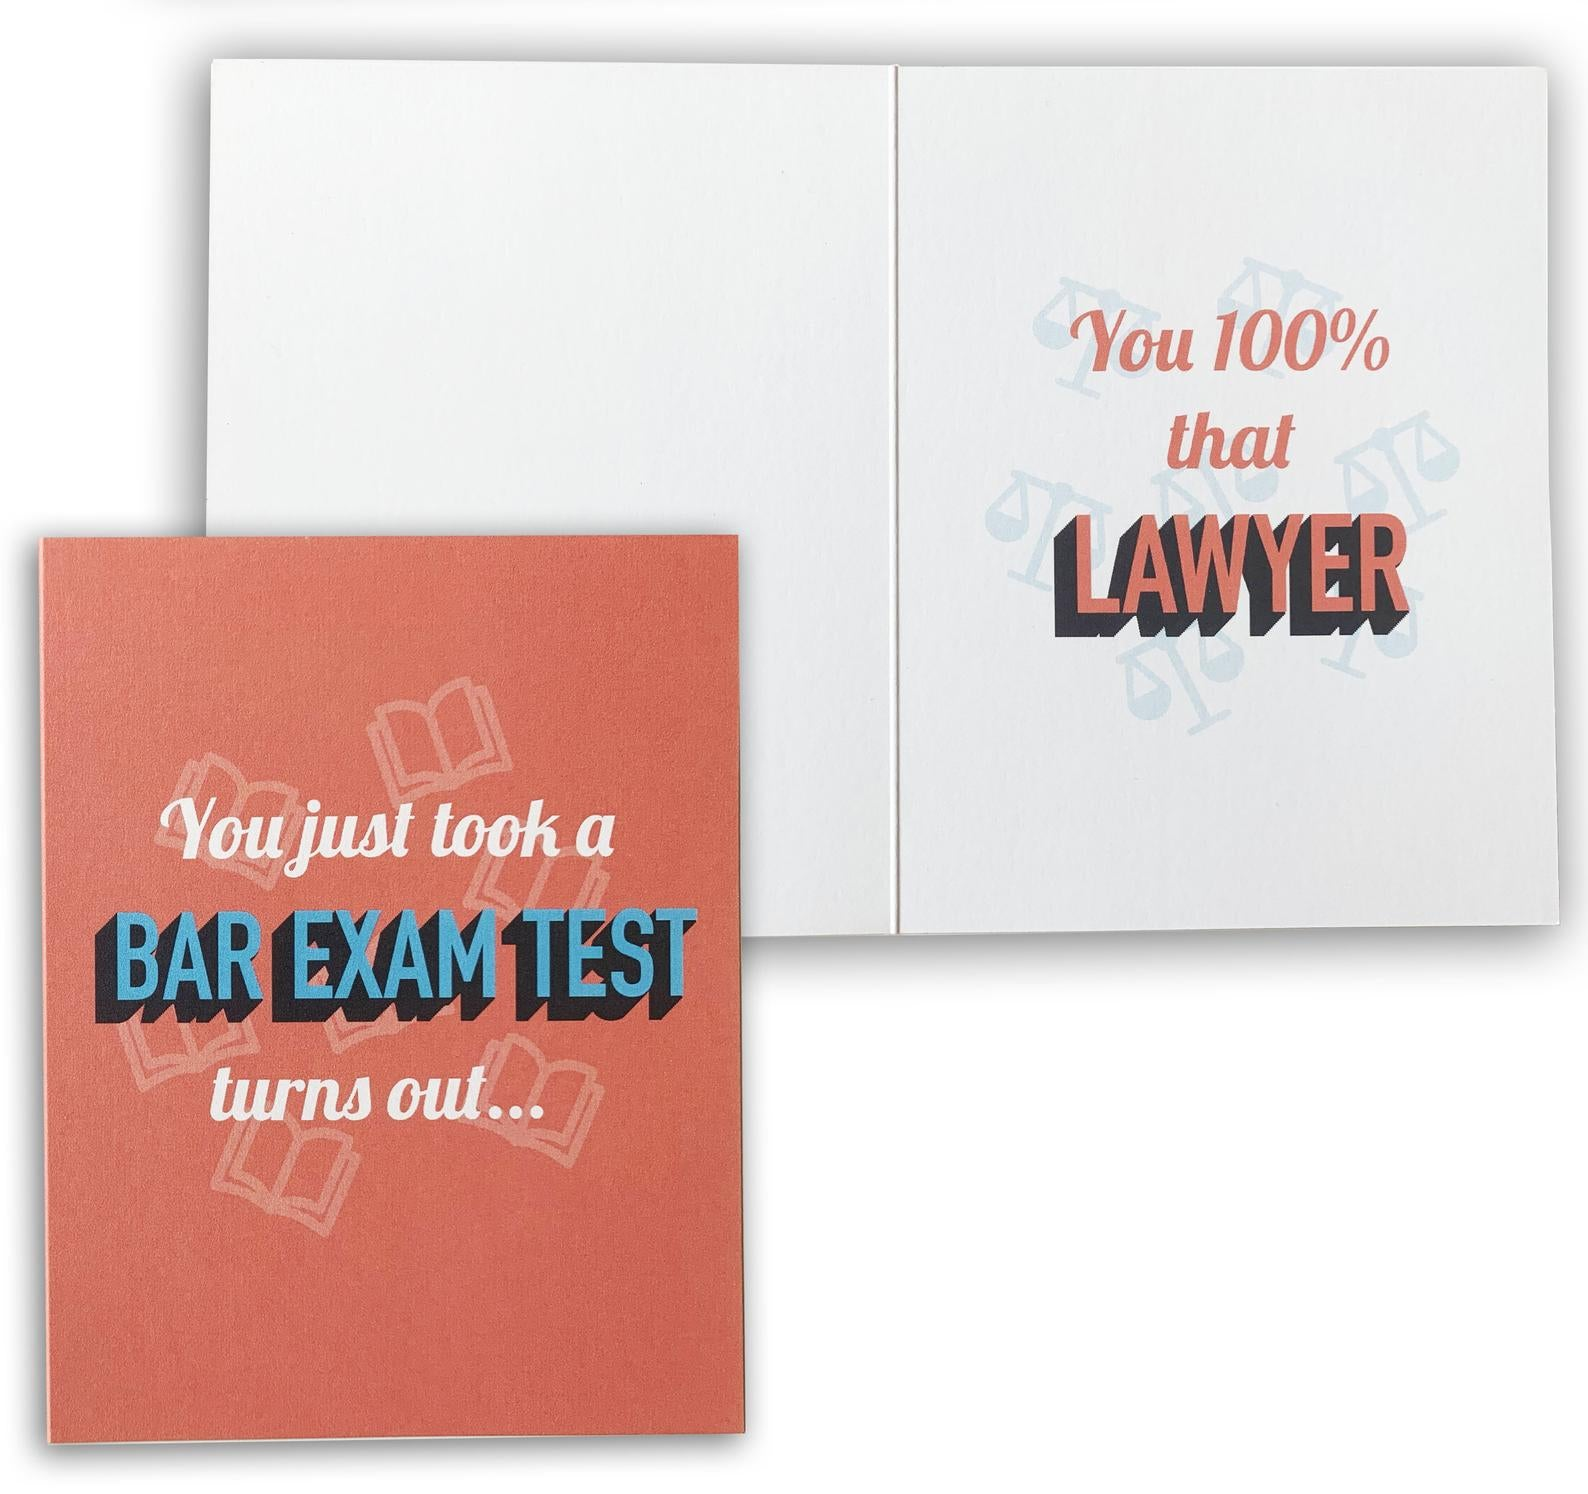 Lizzo Inspired You Just Took a Bar Exam Test, Turns Out You 100% Lawyer | New Attorney Congratulations Greeting Card